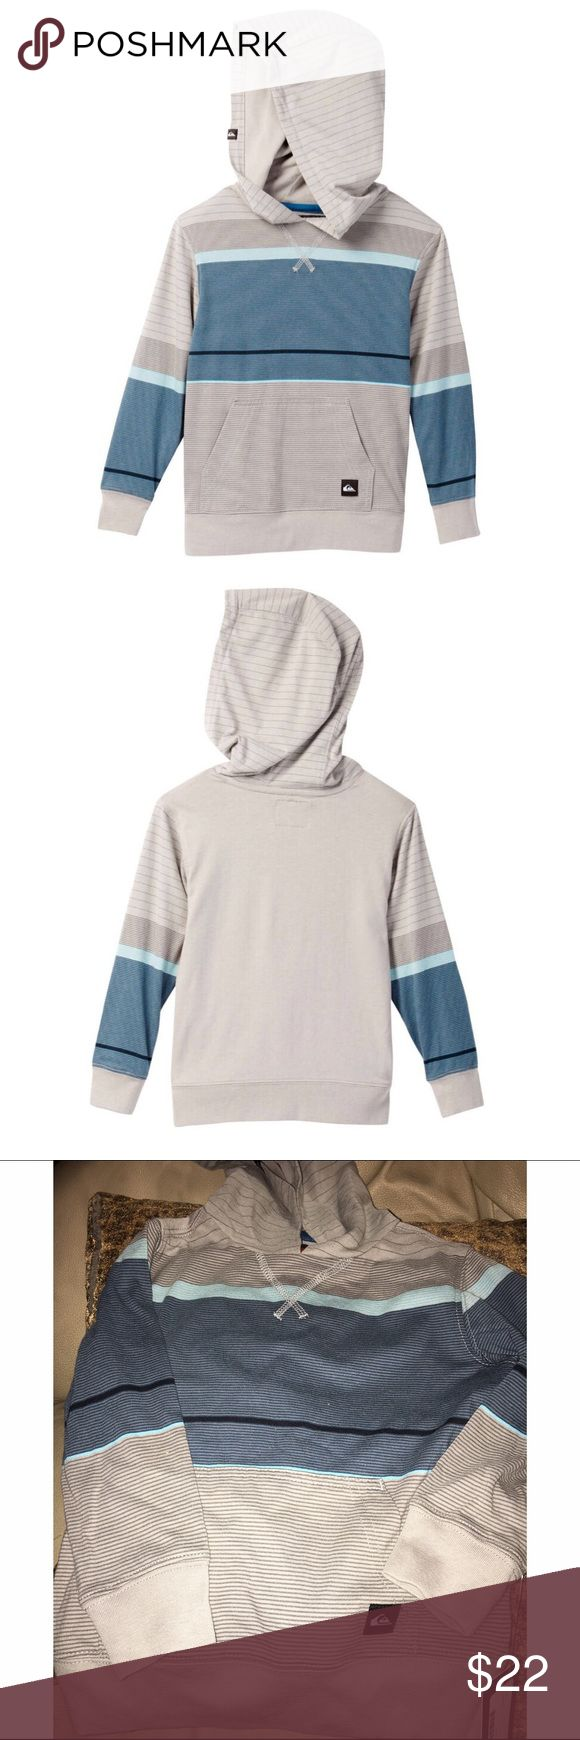 Boy's Quiksilver Moto Stripe L/S Hooded Pullover Brand new with tags. Toddler boy's Quiksilver moto stripe long sleeve hooded pullover. Attached hood, all over moto stripe print, front kangaroo pocket, ribbed trim. 60% cotton, 40% polyester. Size 2T. Lightweight and cozy. ❌NO TRADES ❌NO LOWBALLING❌ Quiksilver Shirts & Tops Sweatshirts & Hoodies